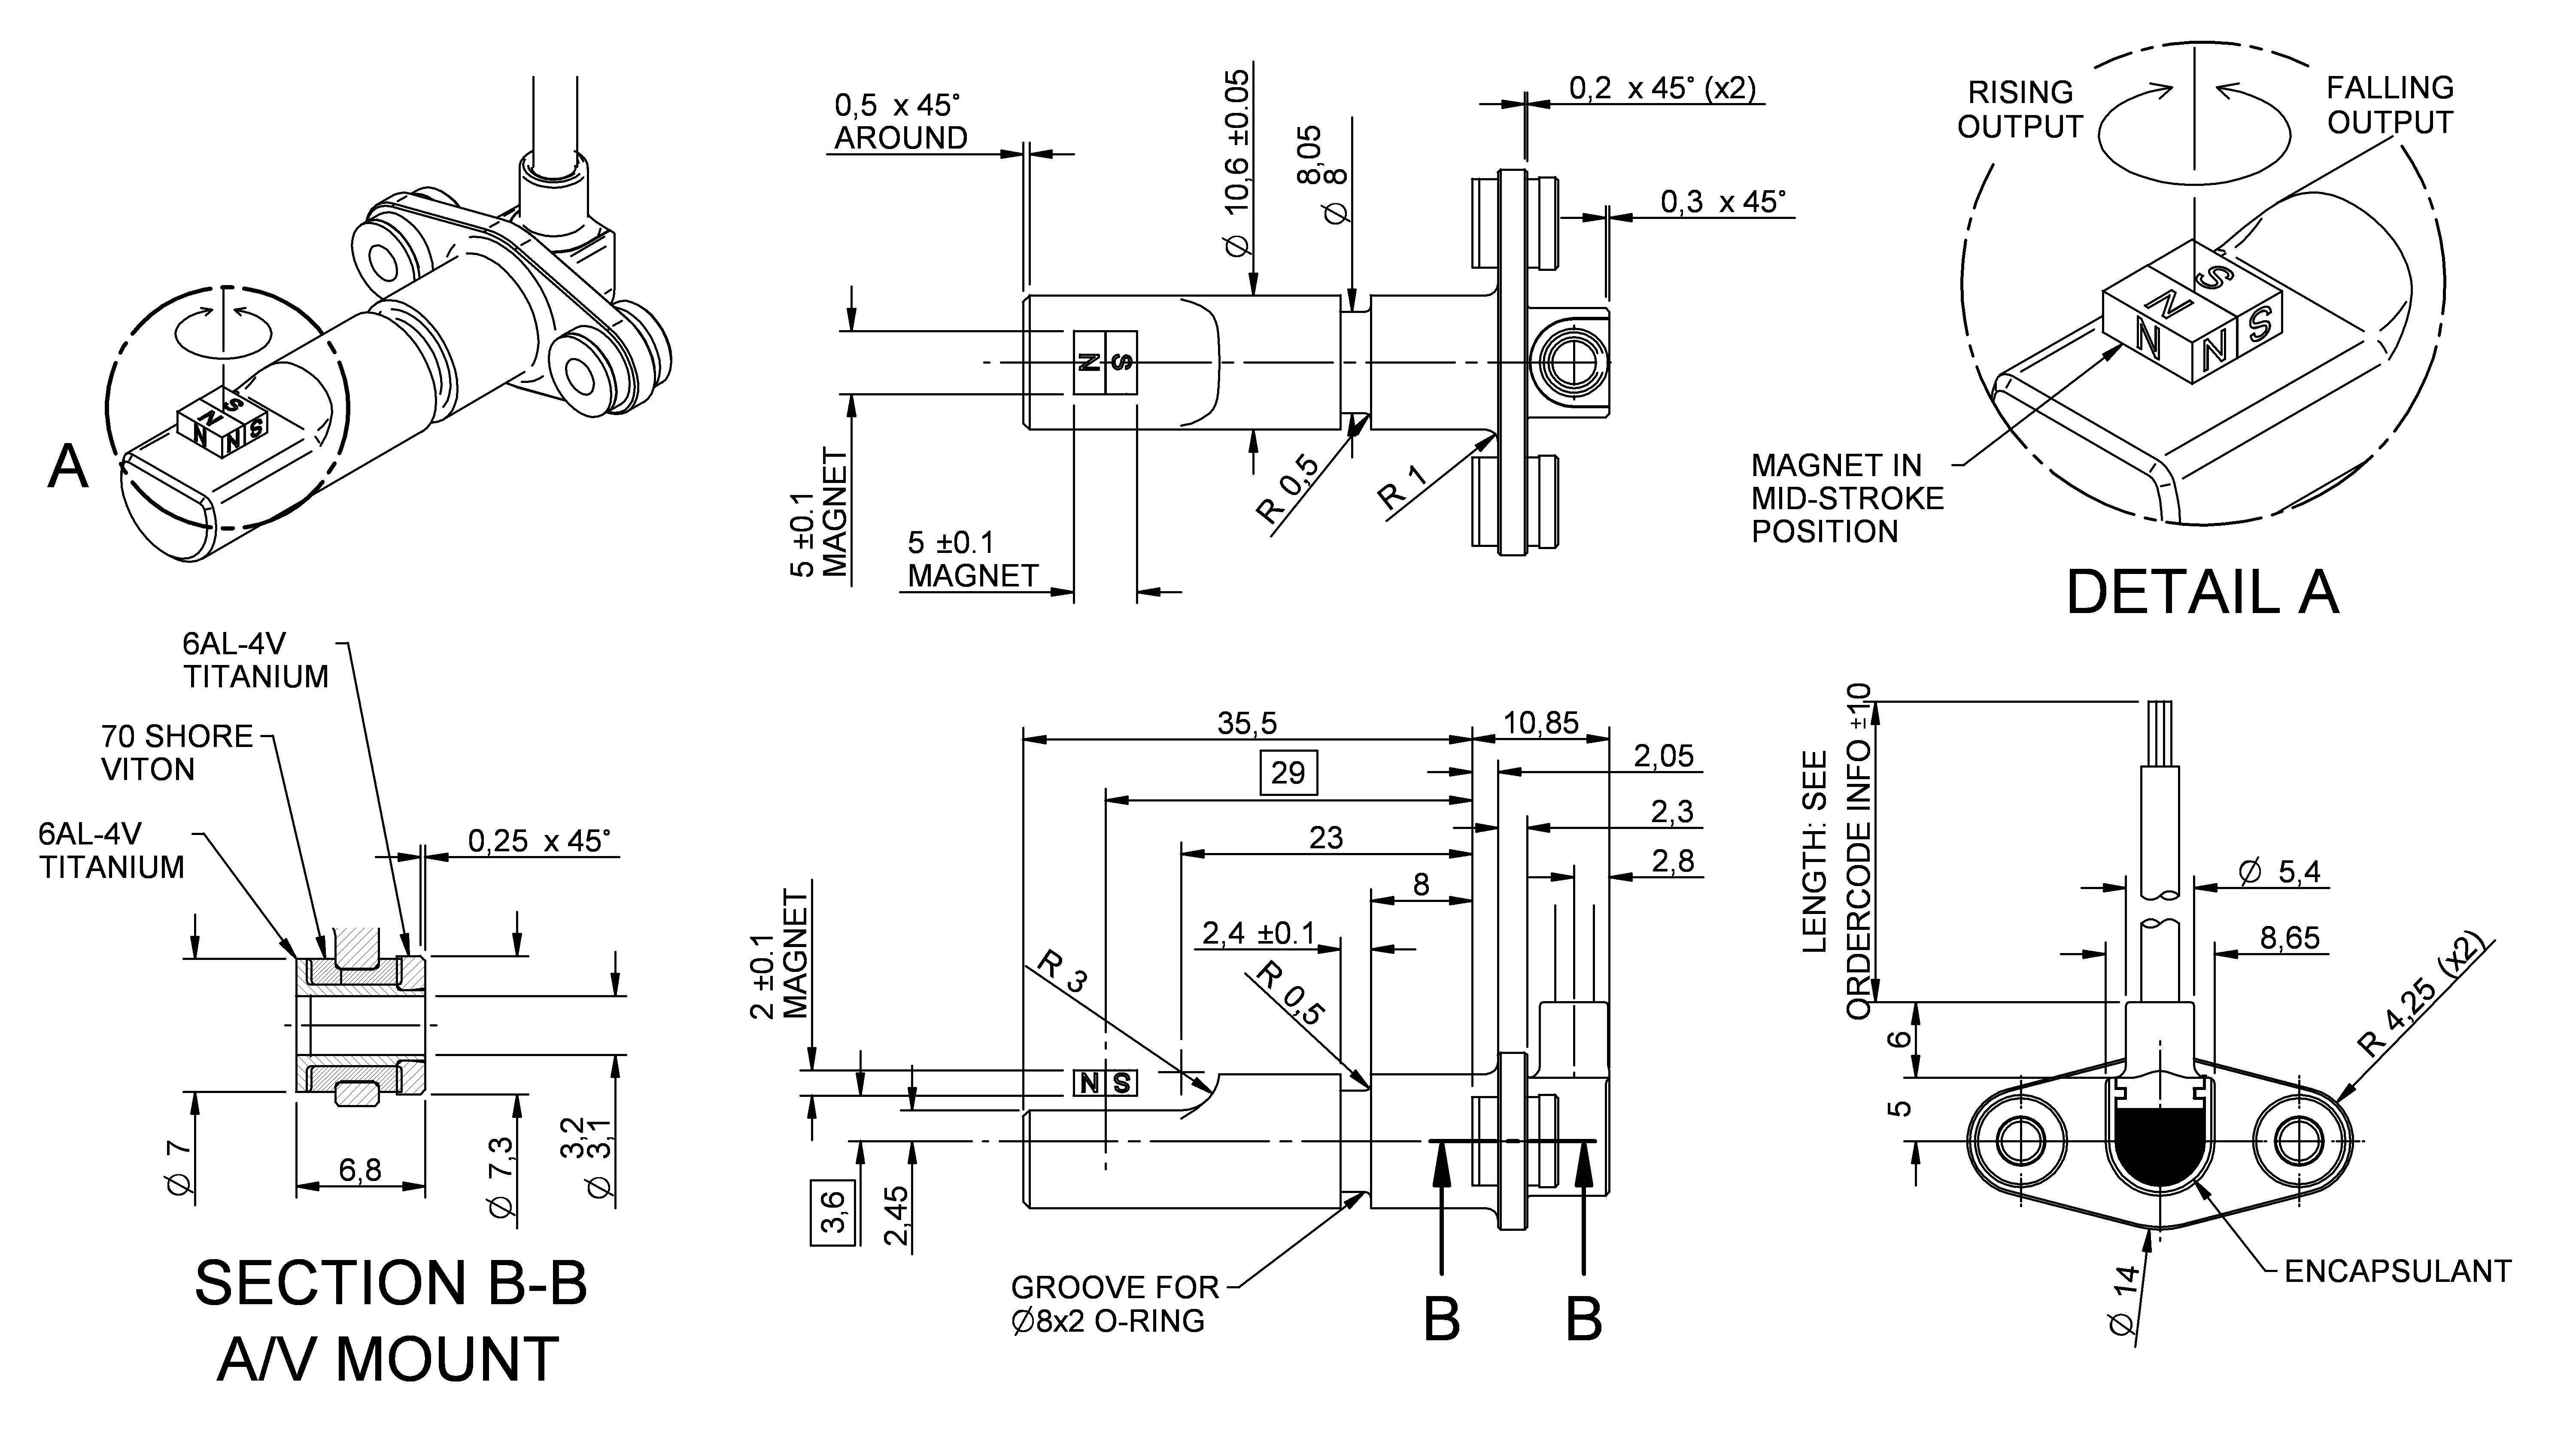 jeep cj7 wiring diagram for kenmore dryer model 110 1984 best site harness